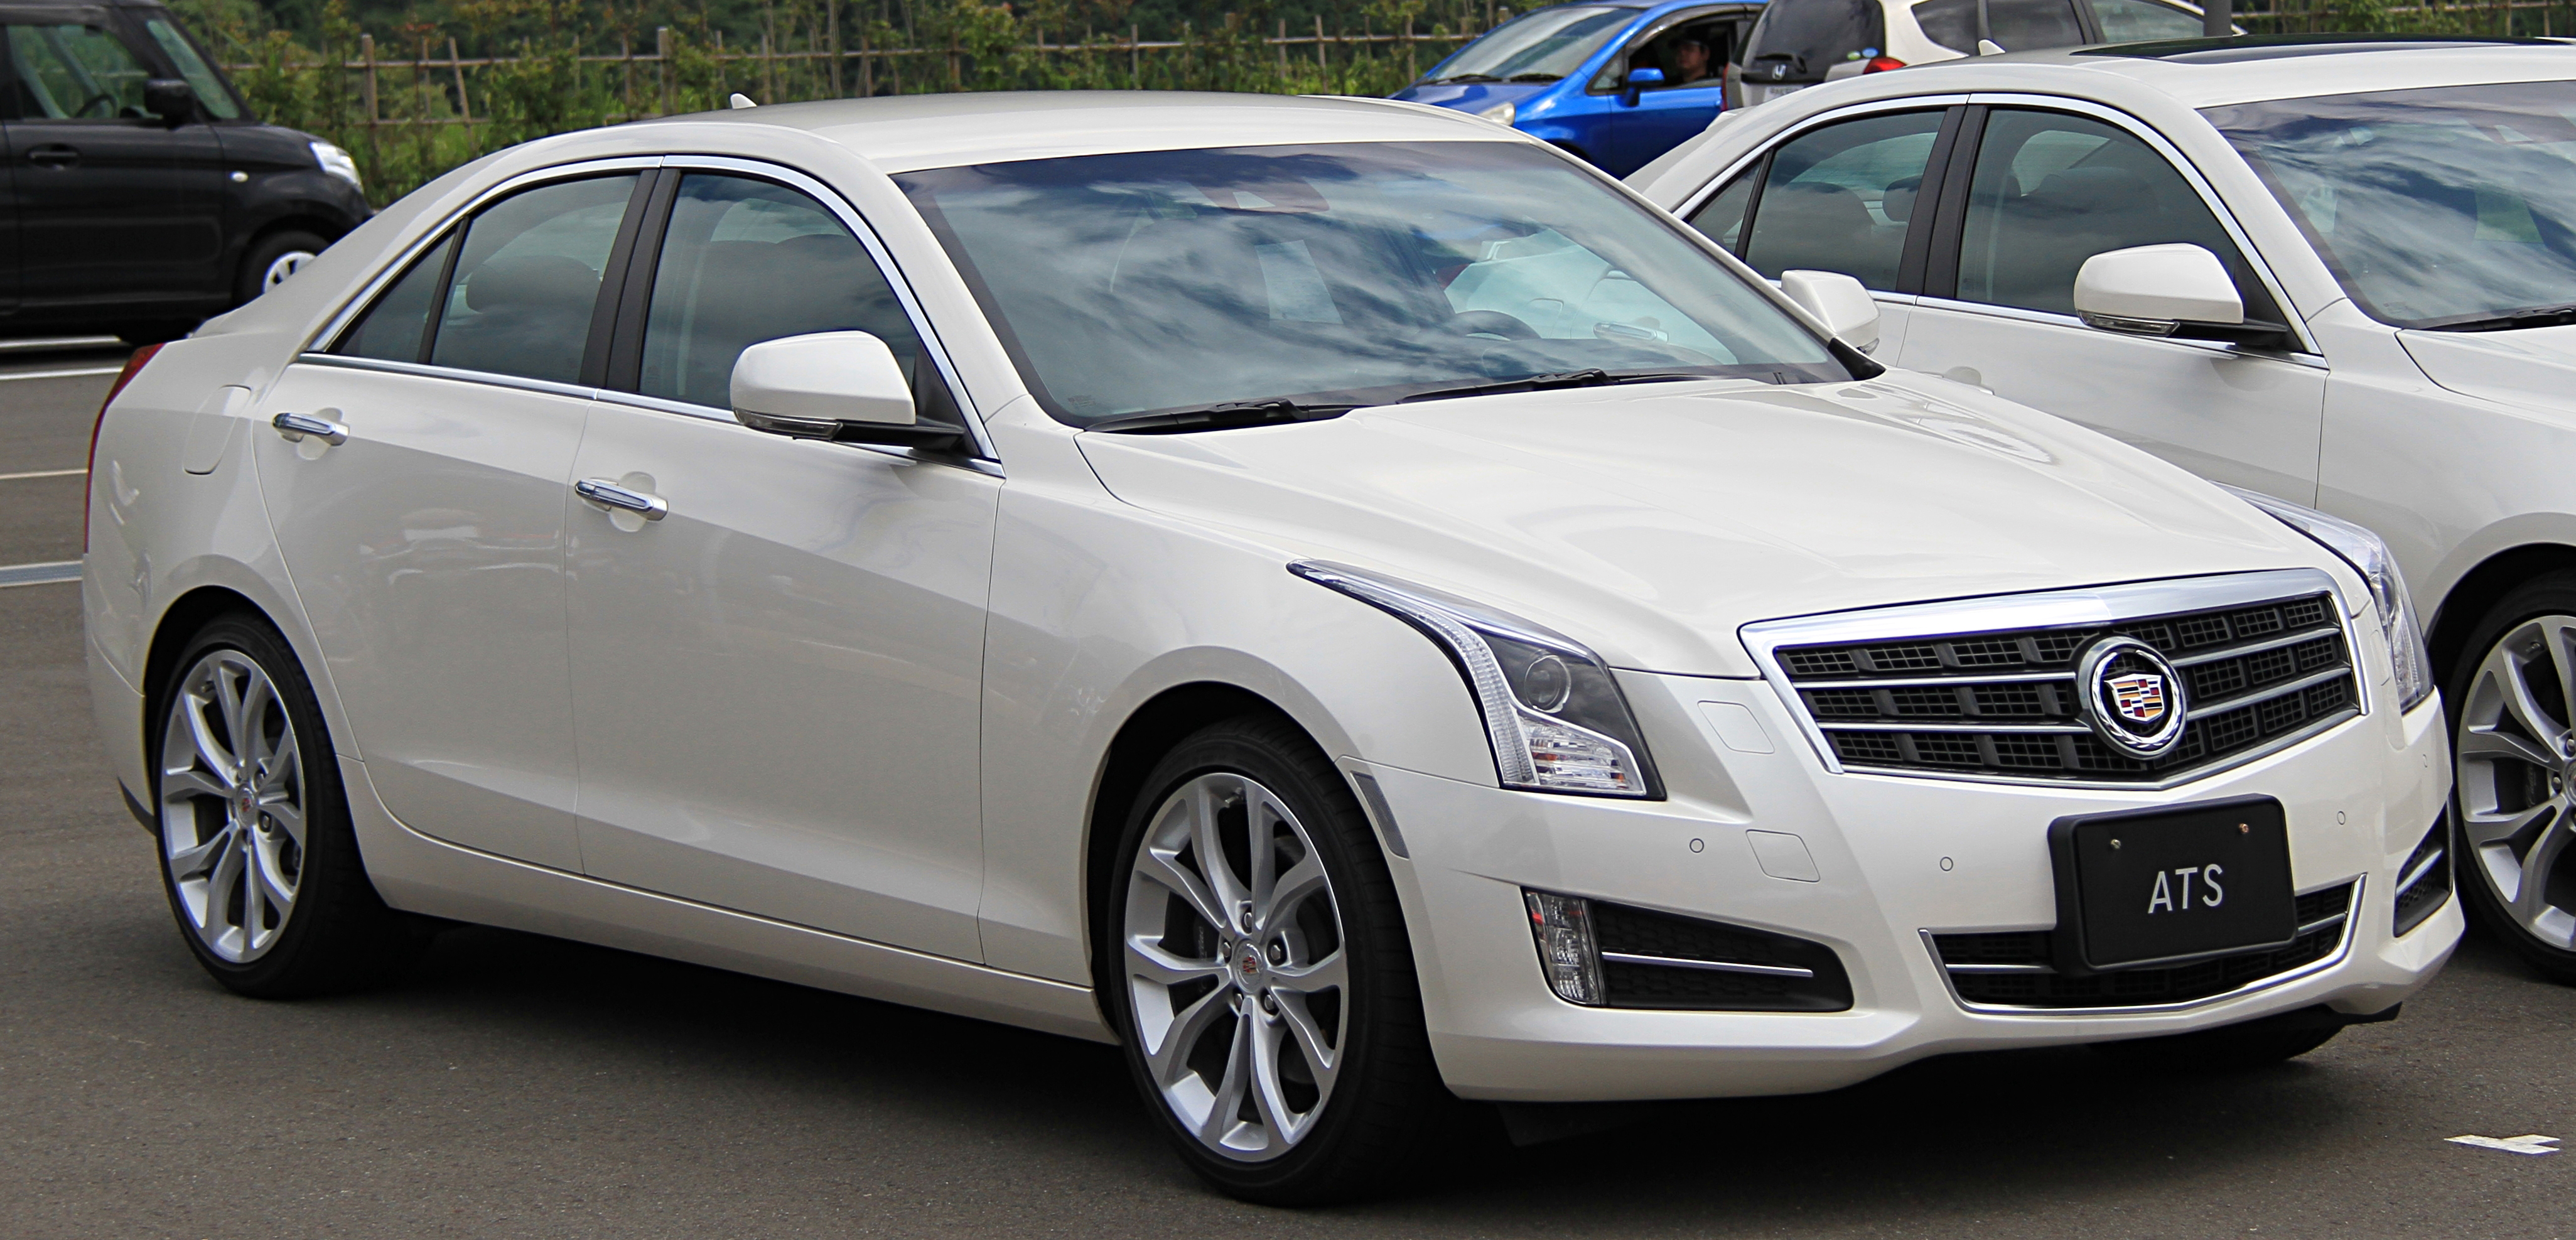 What Does Ats Mean >> Cadillac Ats Wikipedia